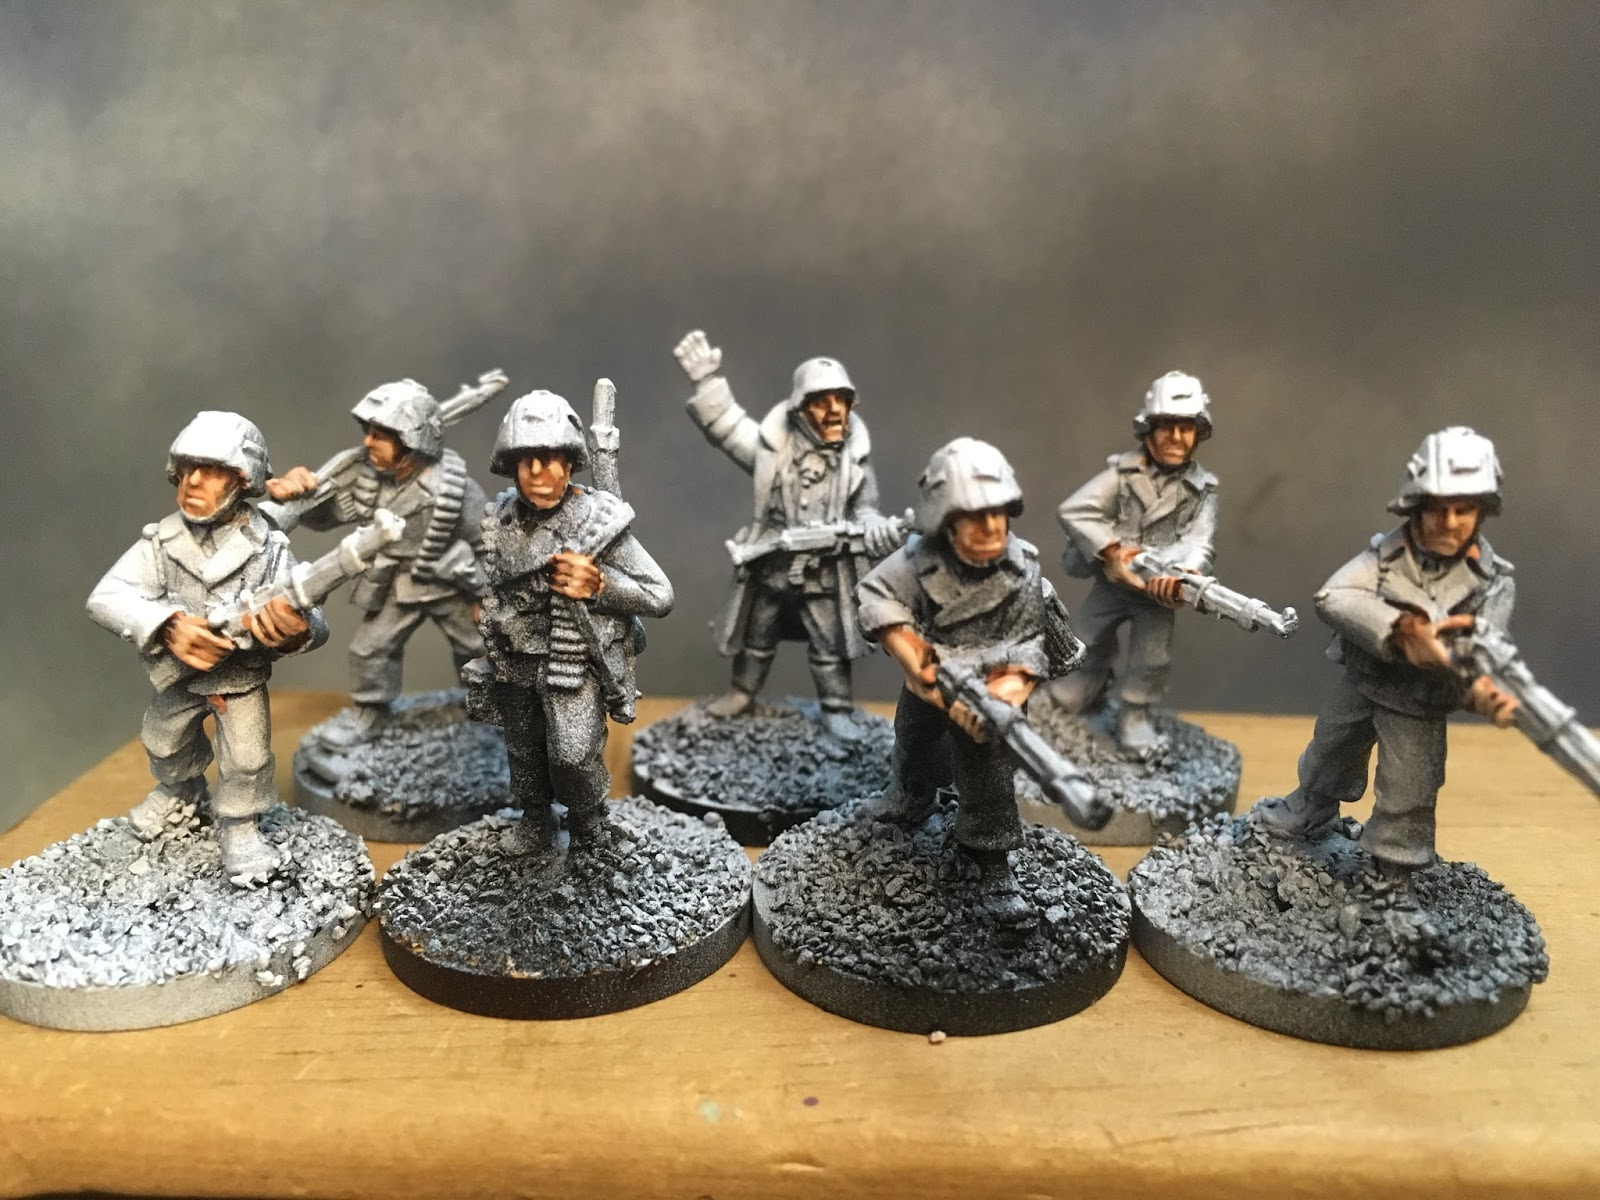 Painting miniatures color master primer - A Word On Priming The Way I Prime My Miniatures Is With An Army Painter Black Primer Spray Can I Then Follow This Up By A Light Spray Of Army Painter